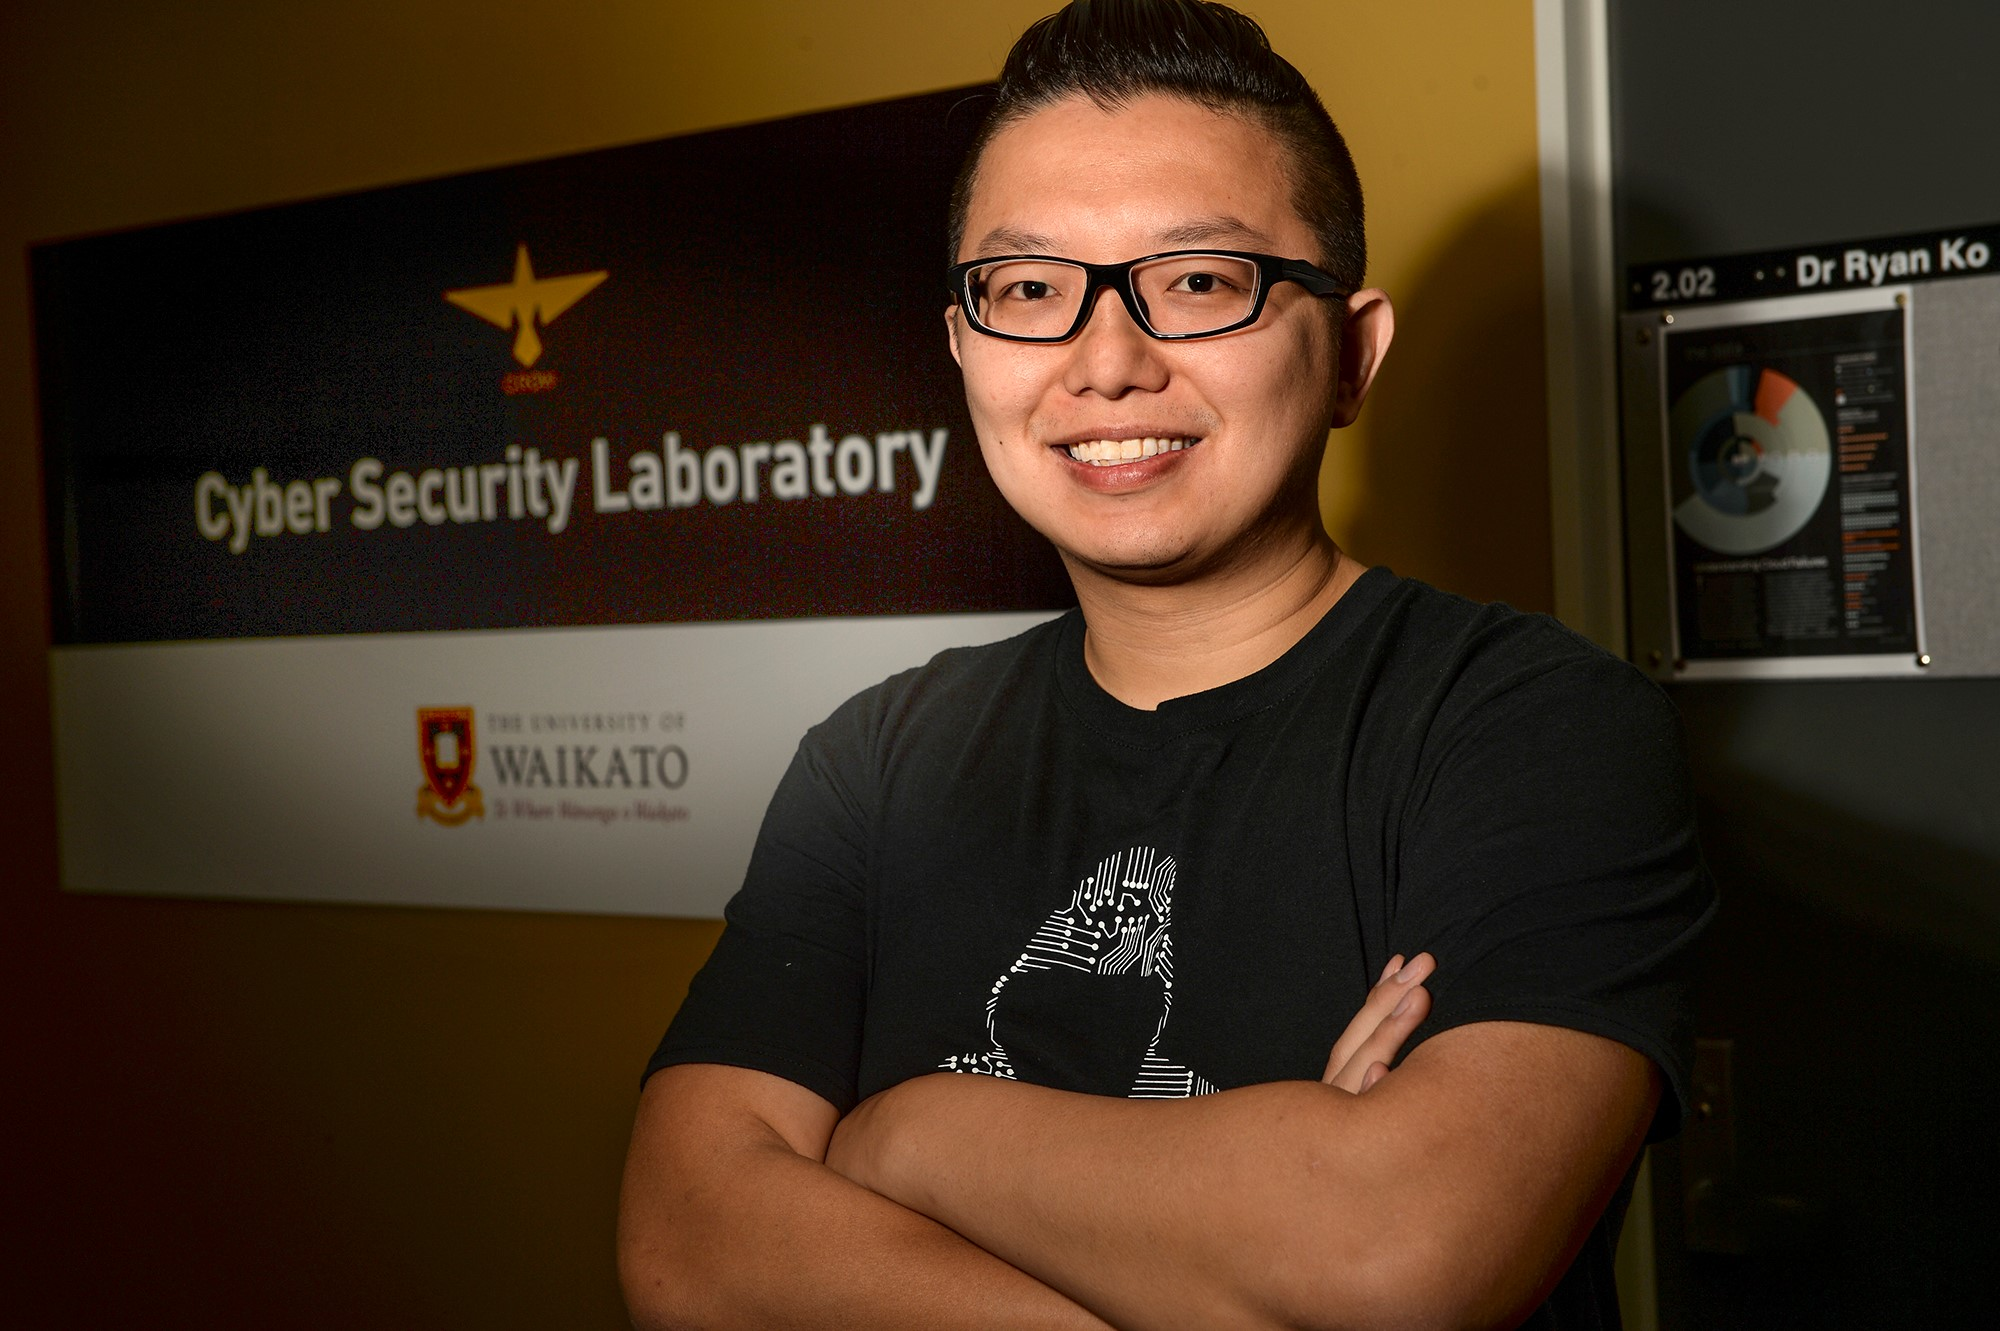 Article by Make Lemonade NZ - Ryan Ko, CROW cyber security